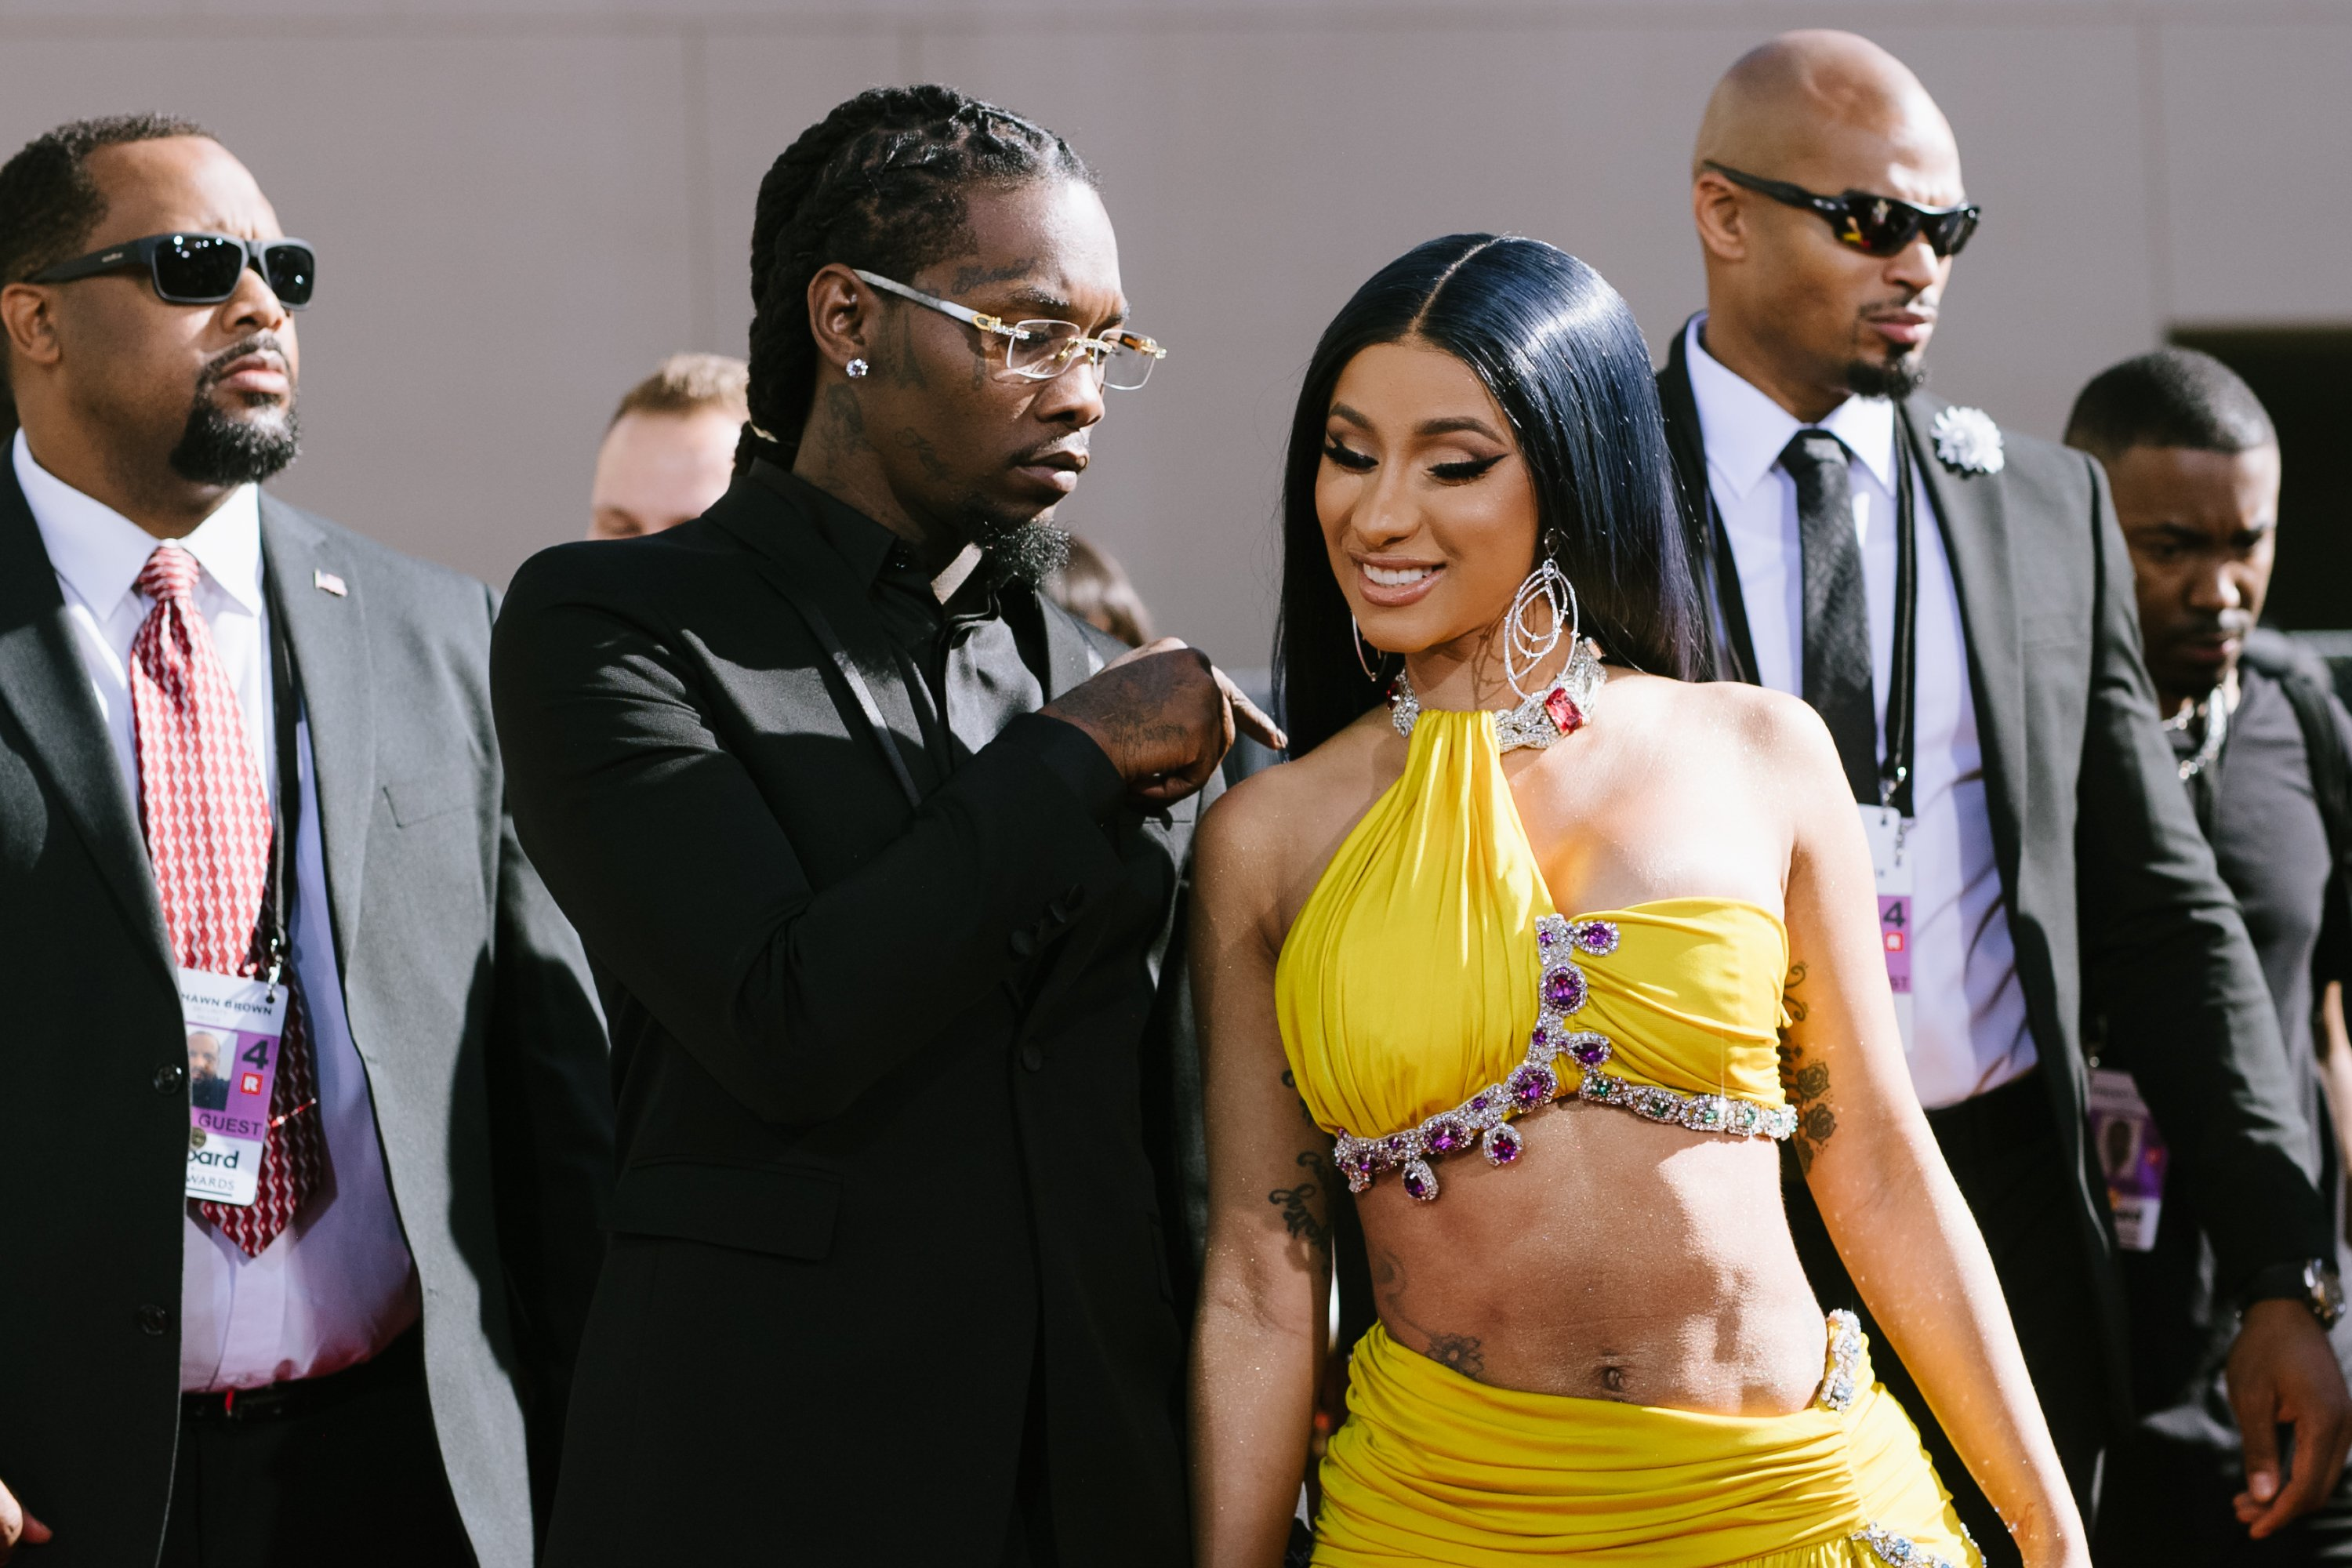 Offset and Cardi B arrive at the 2019 Billboard Music Awards.   Photo: GettyImages